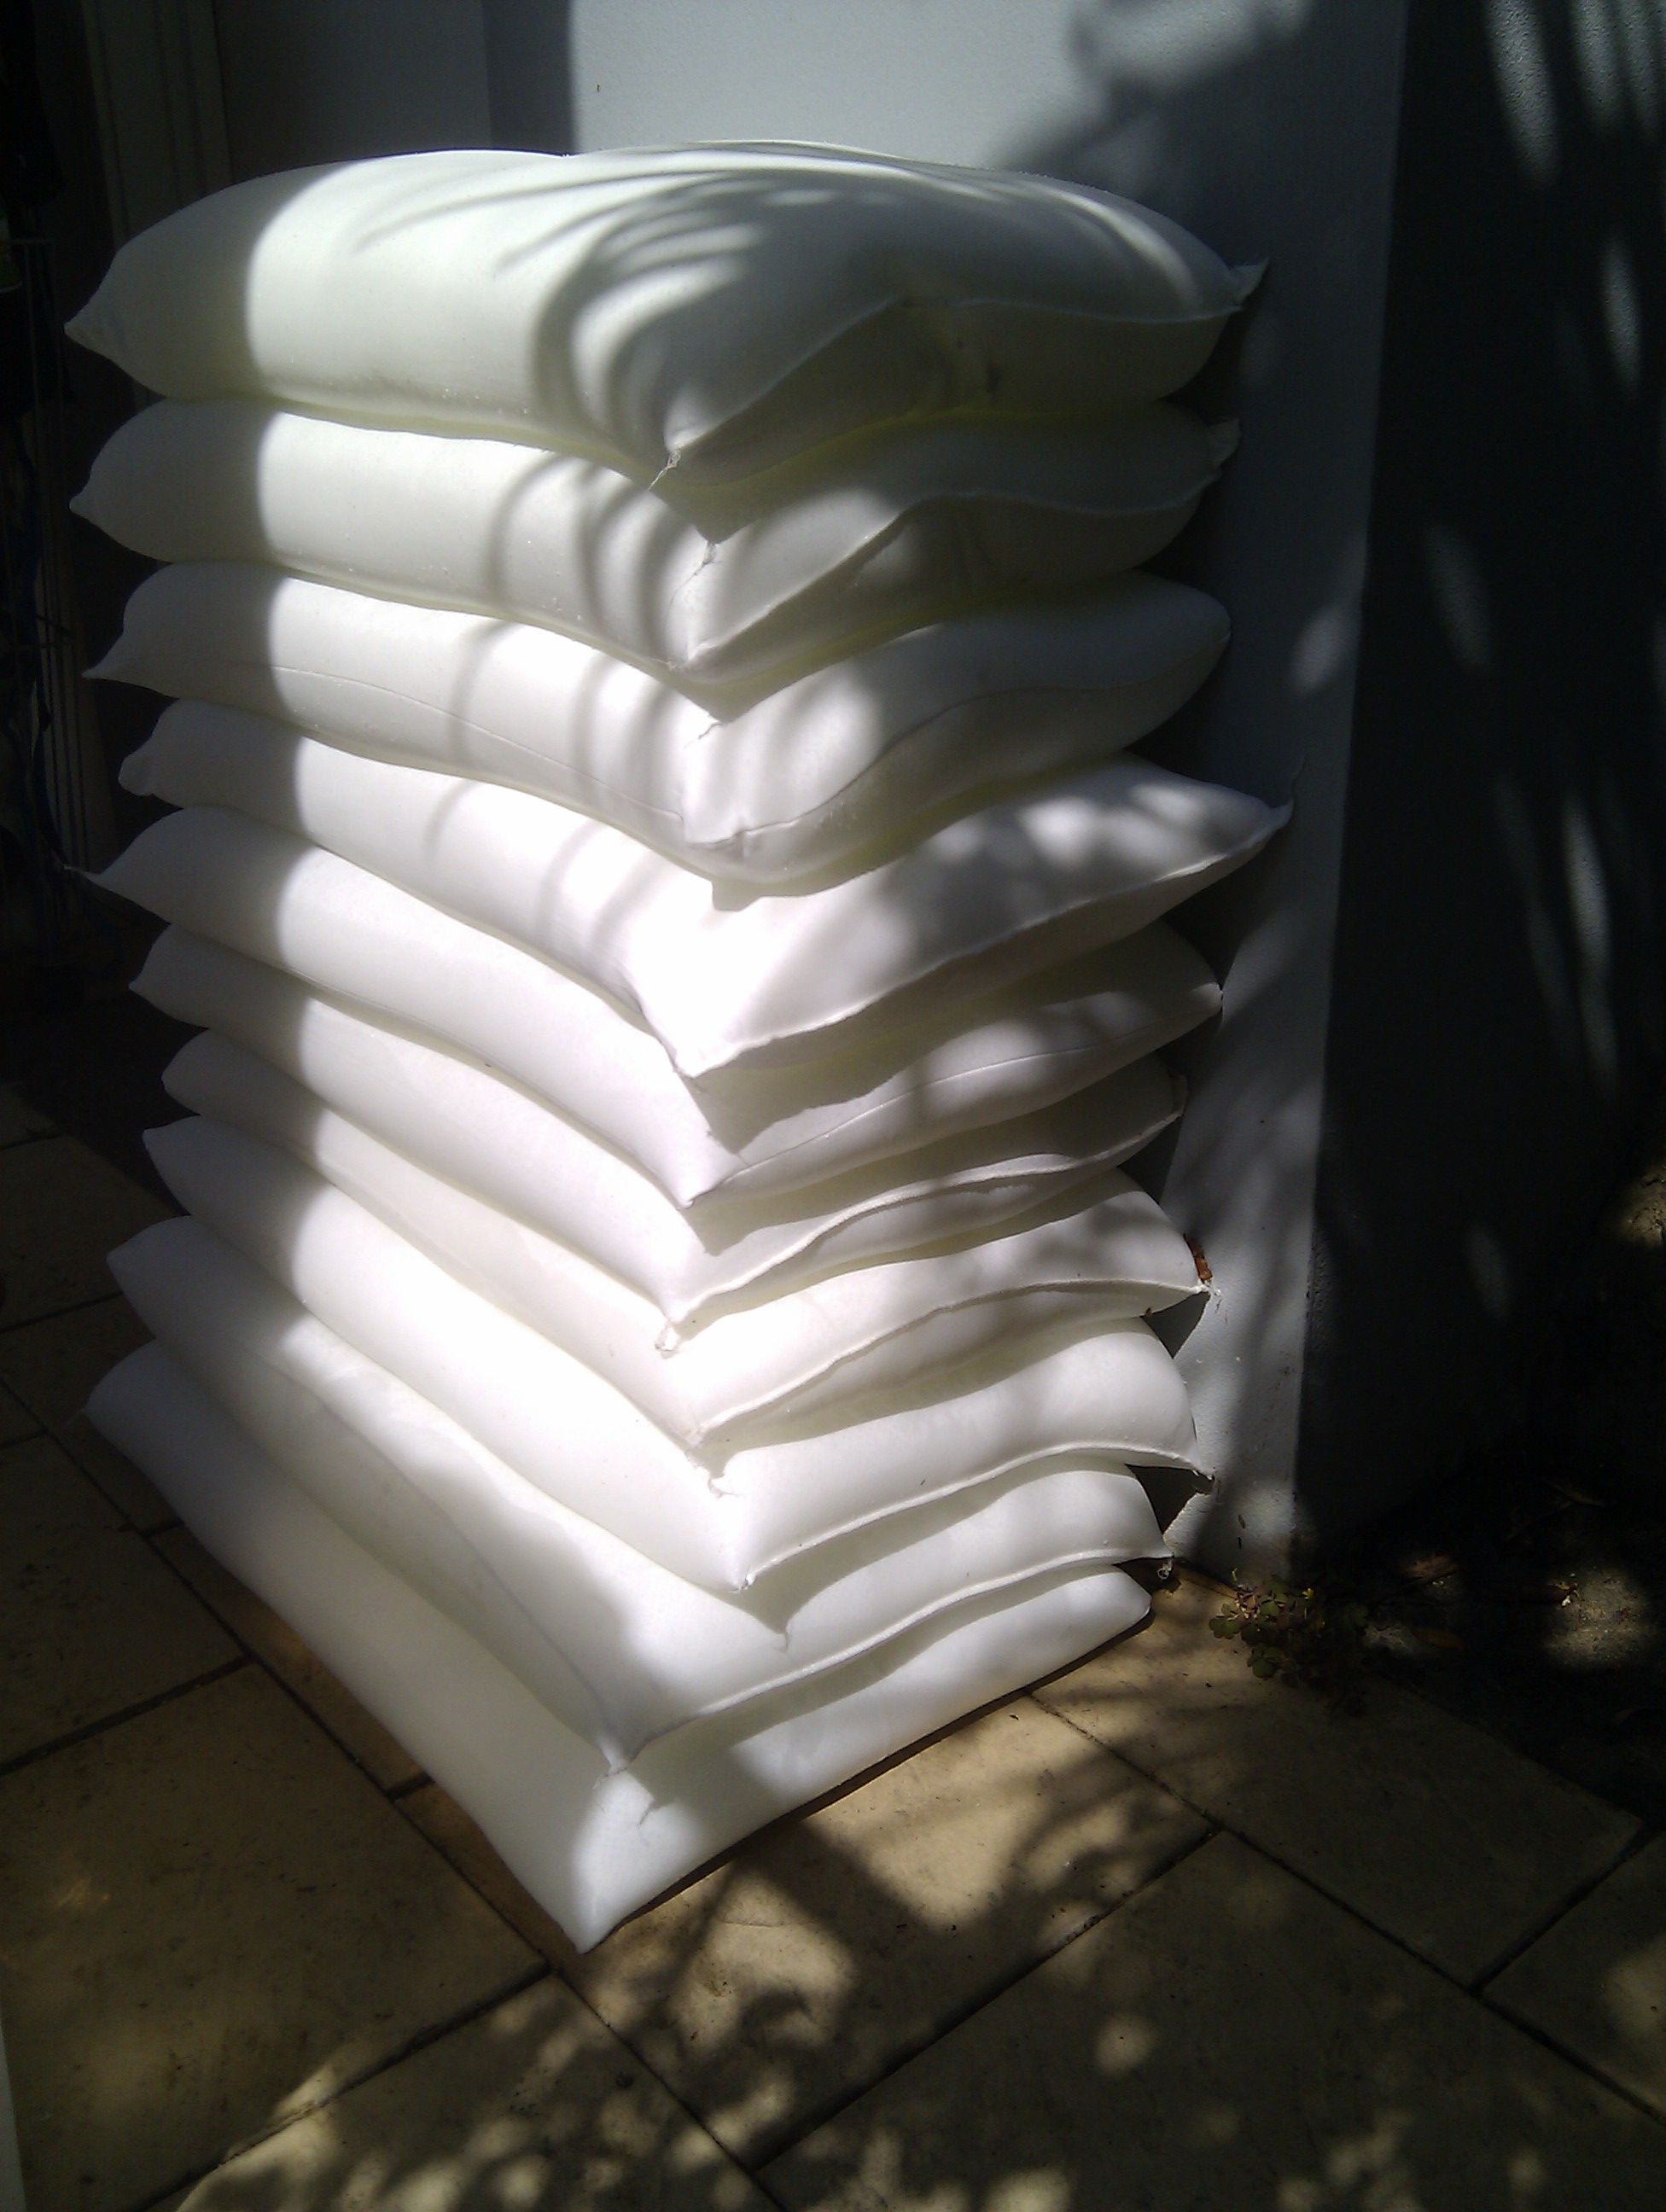 Absorbeez Standard Sandless Sandbag 600 x 300 mm - 10 stacked to 78cm